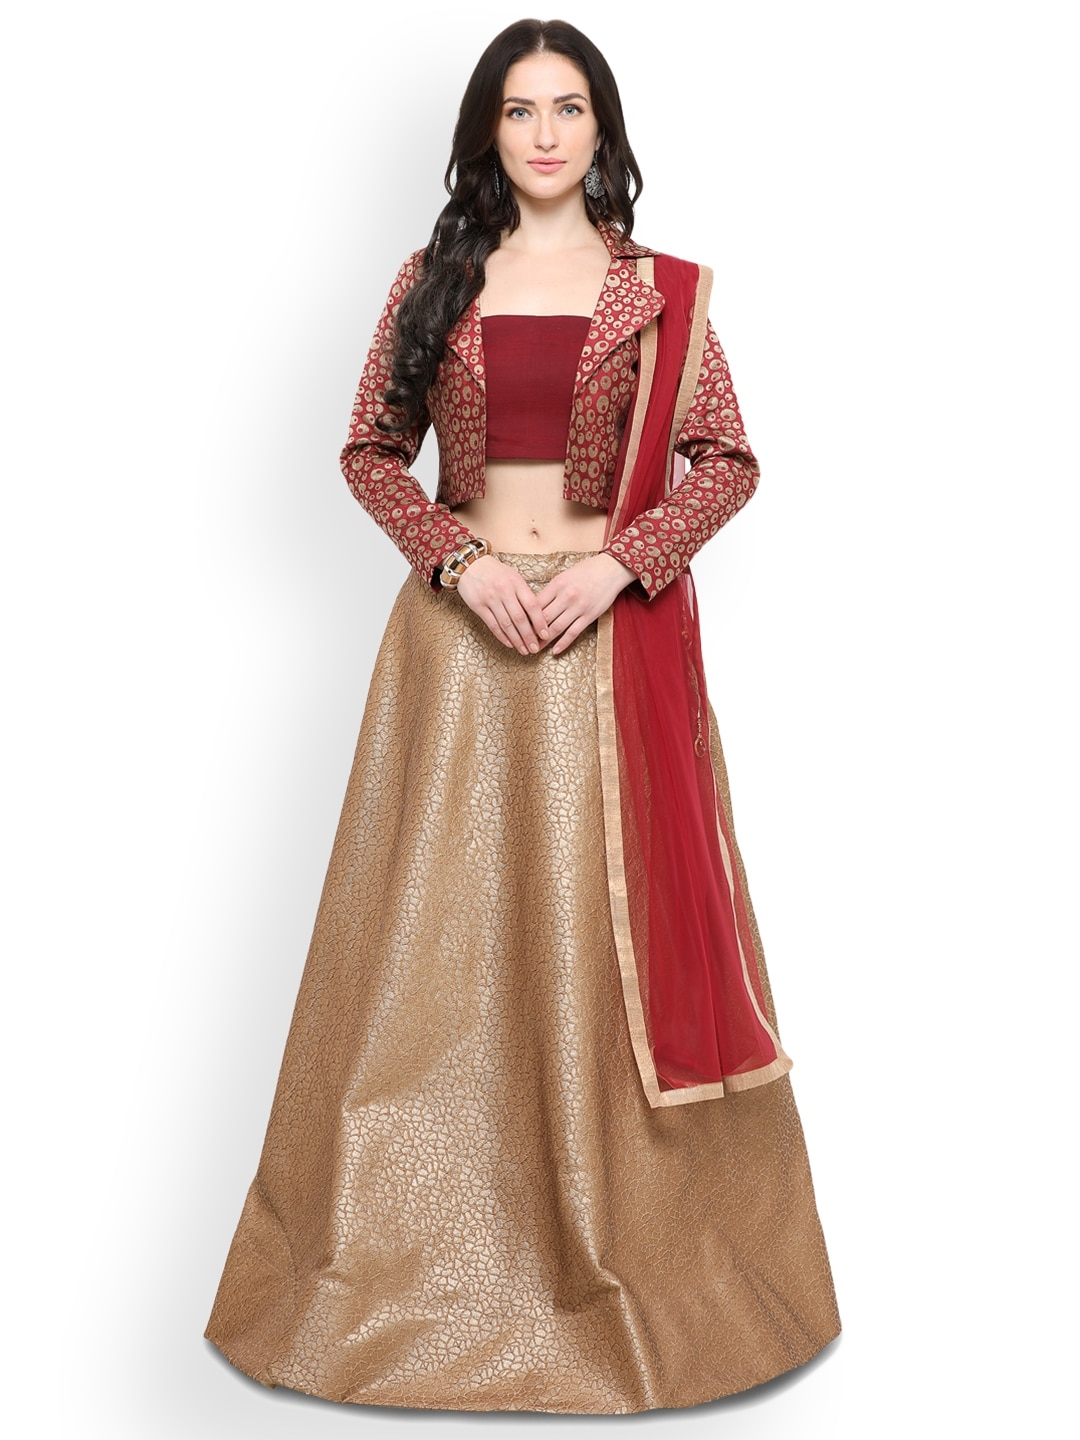 Inddus Beige & Maroon Woven Design Semi-Stitched Lehenga & Unstitched Blouse With Dupatta image